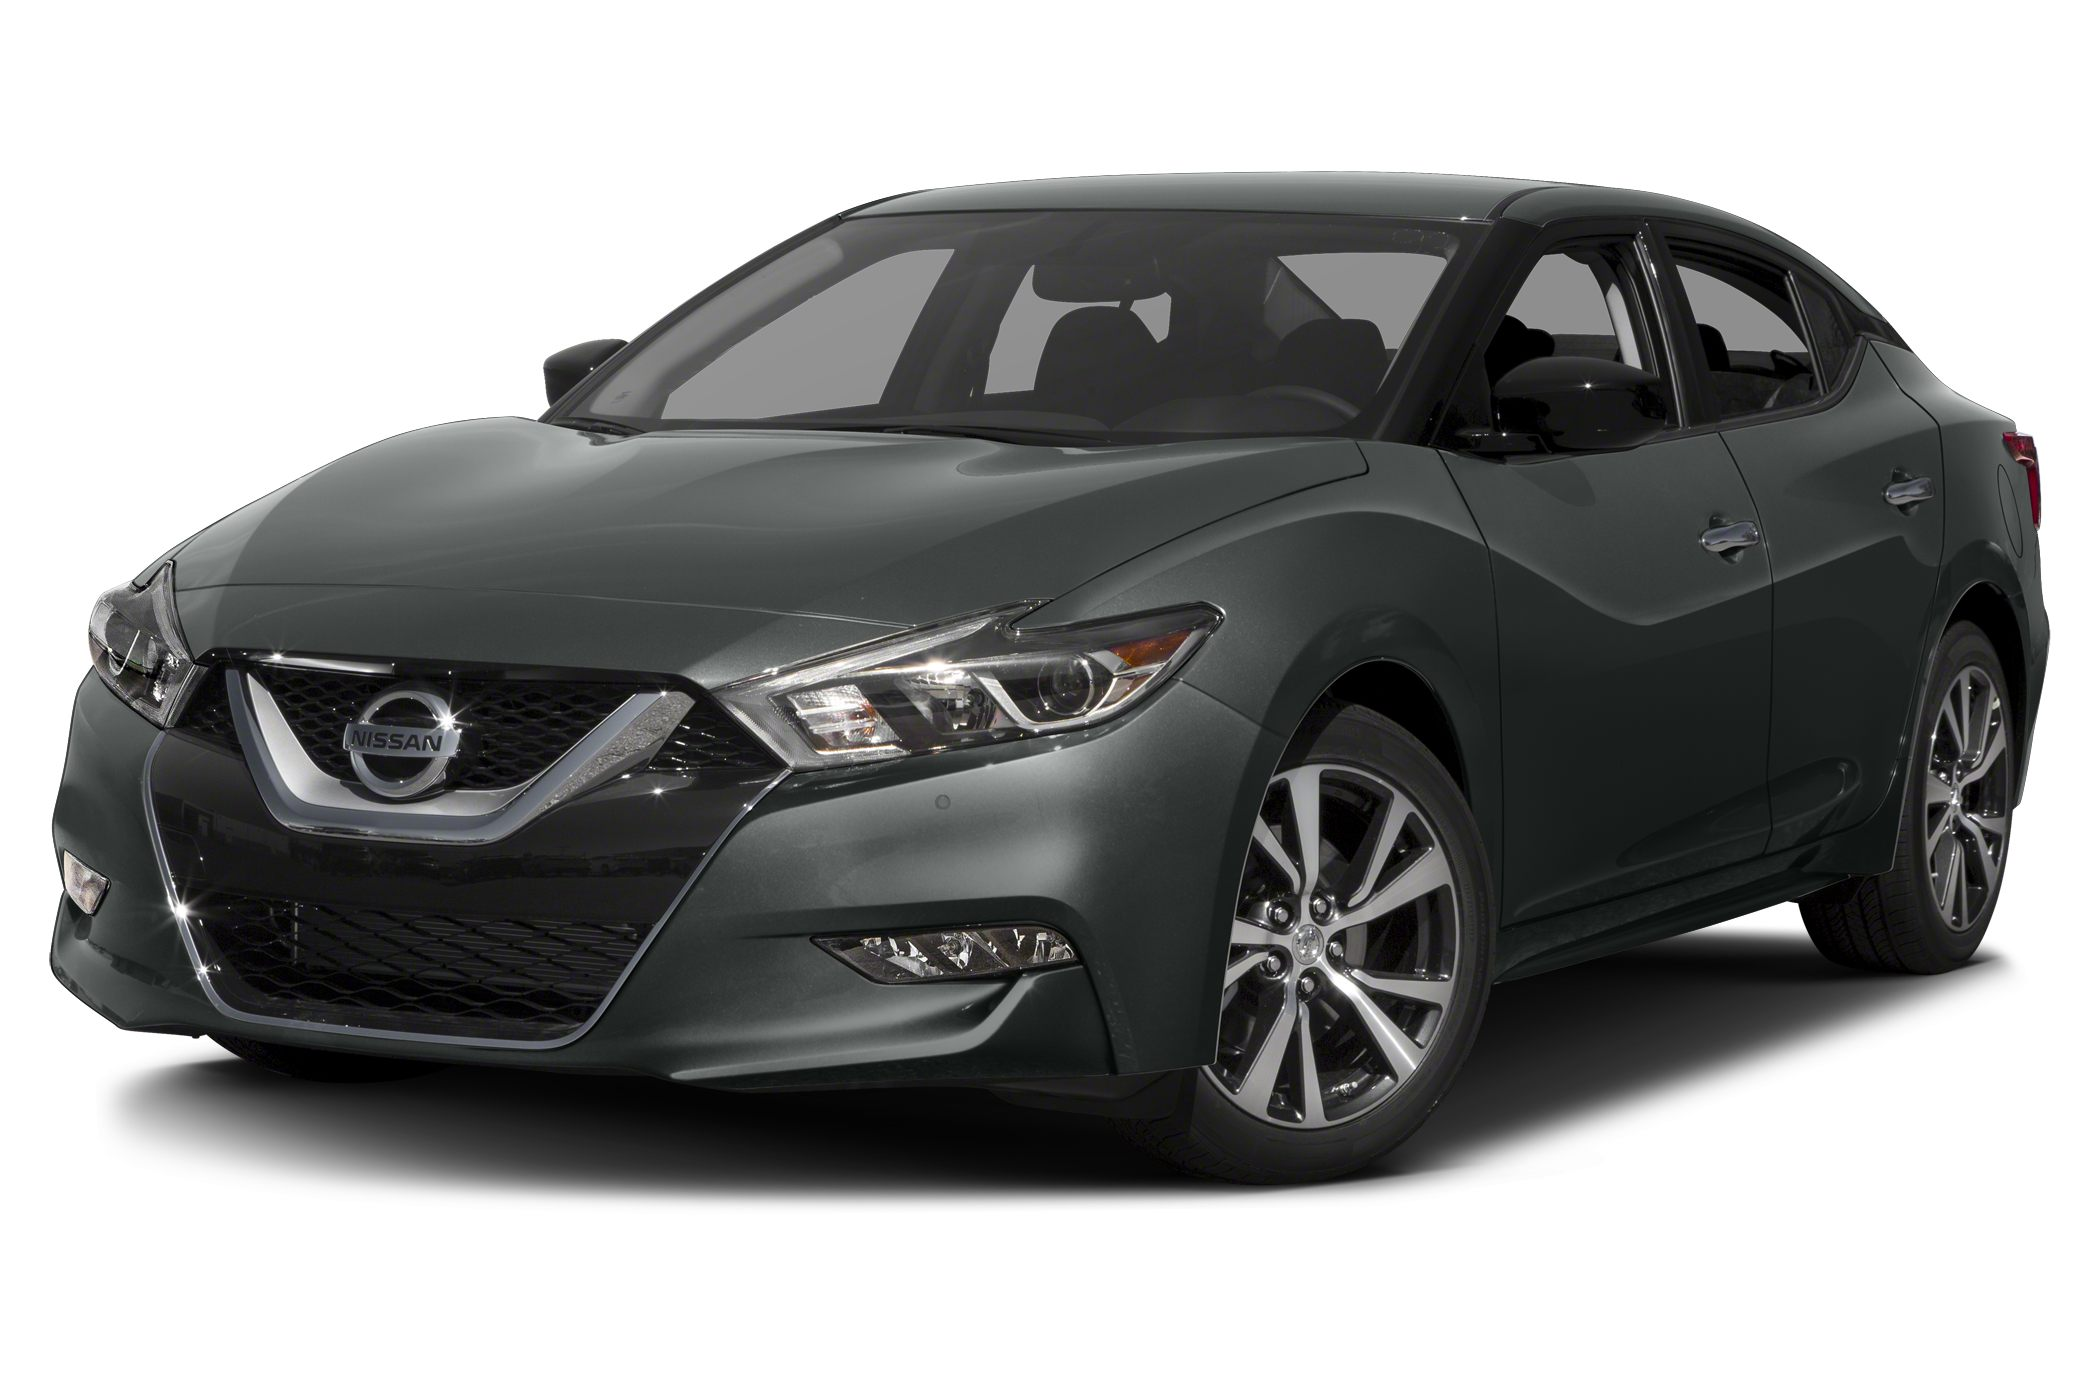 2016 Nissan Maxima Pricing And Specs